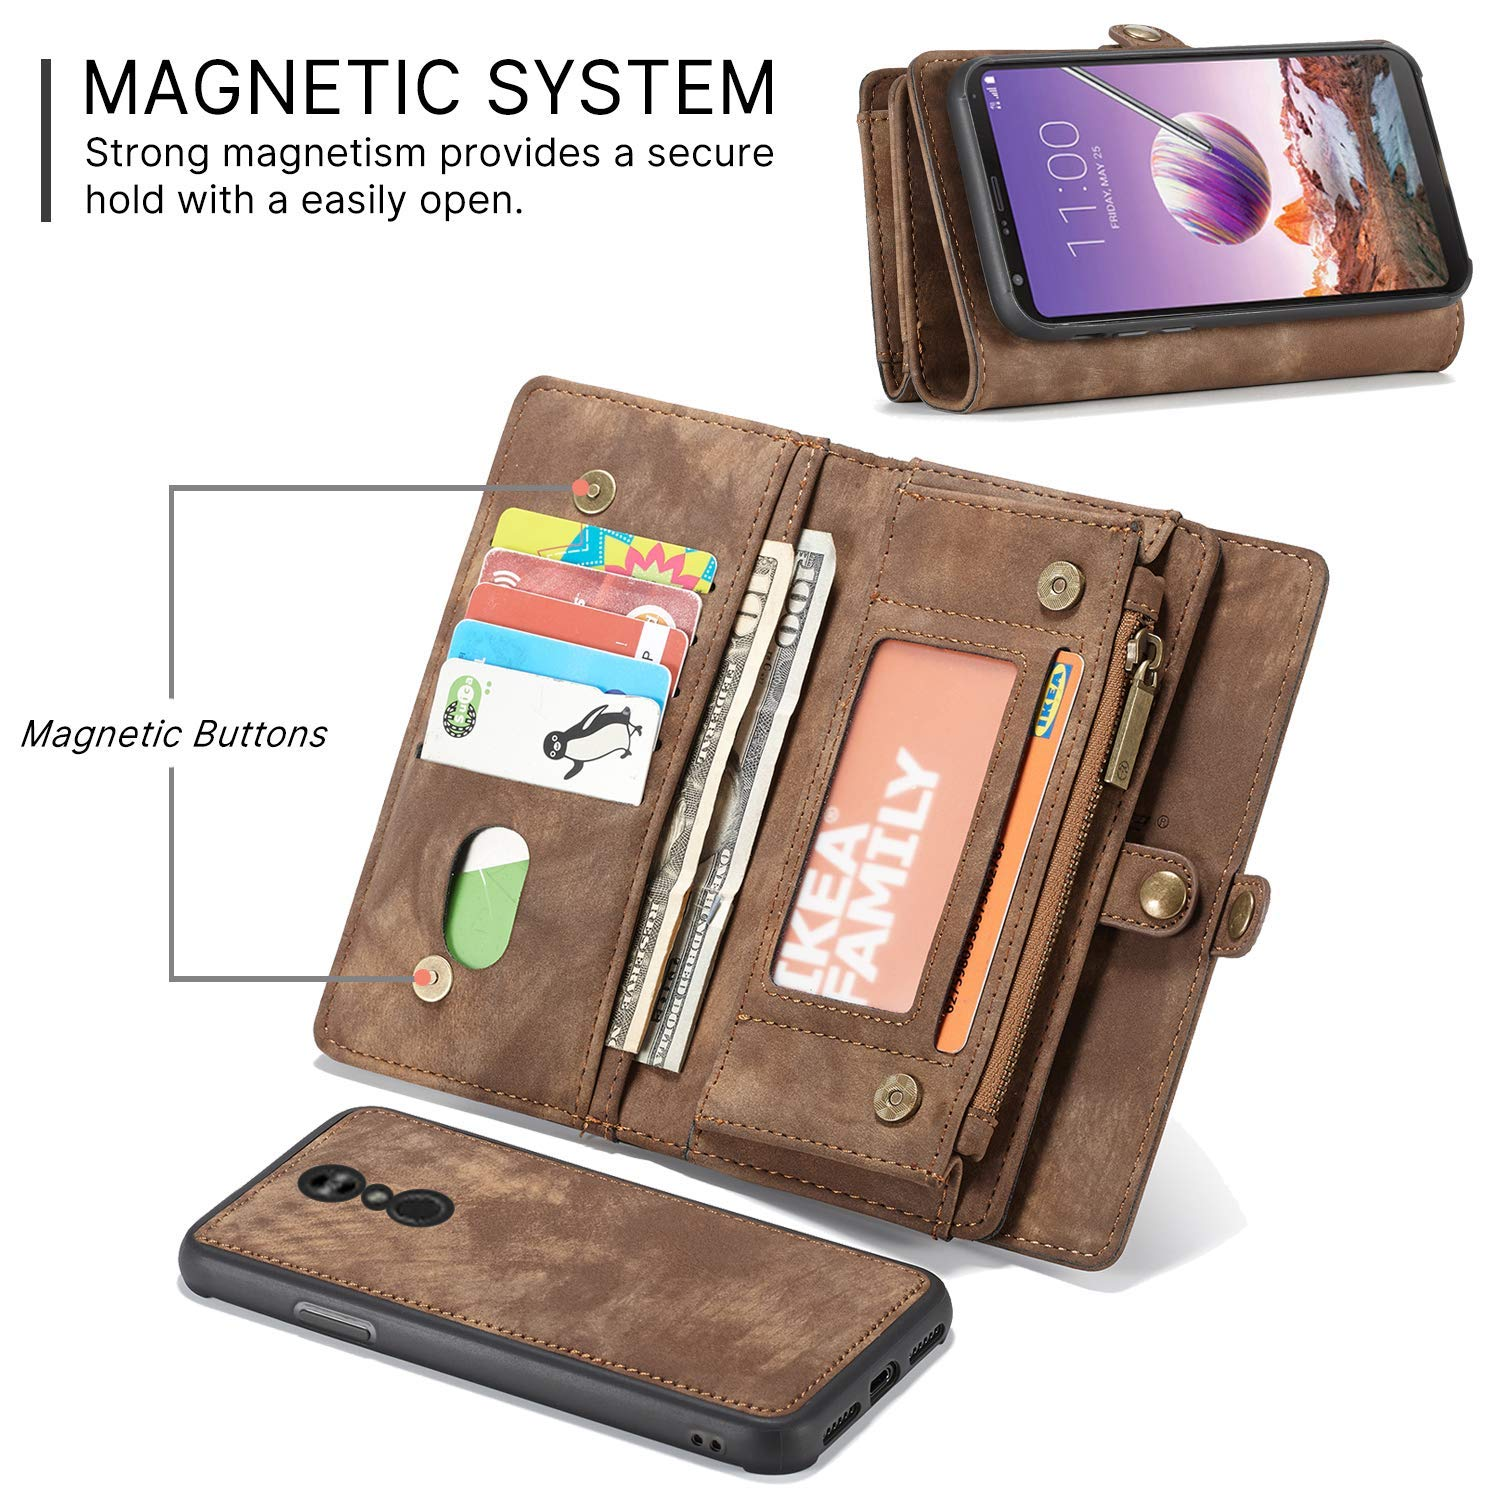 Retro Zipper Purse Detachable Magnetic Case Cover with Flip Credit Card Slots Shockproof Smart Wallet Case for Moto E5 Play Spritech Moto E5 Play Wallet Case,Motorola Moto E5 Cruise Case